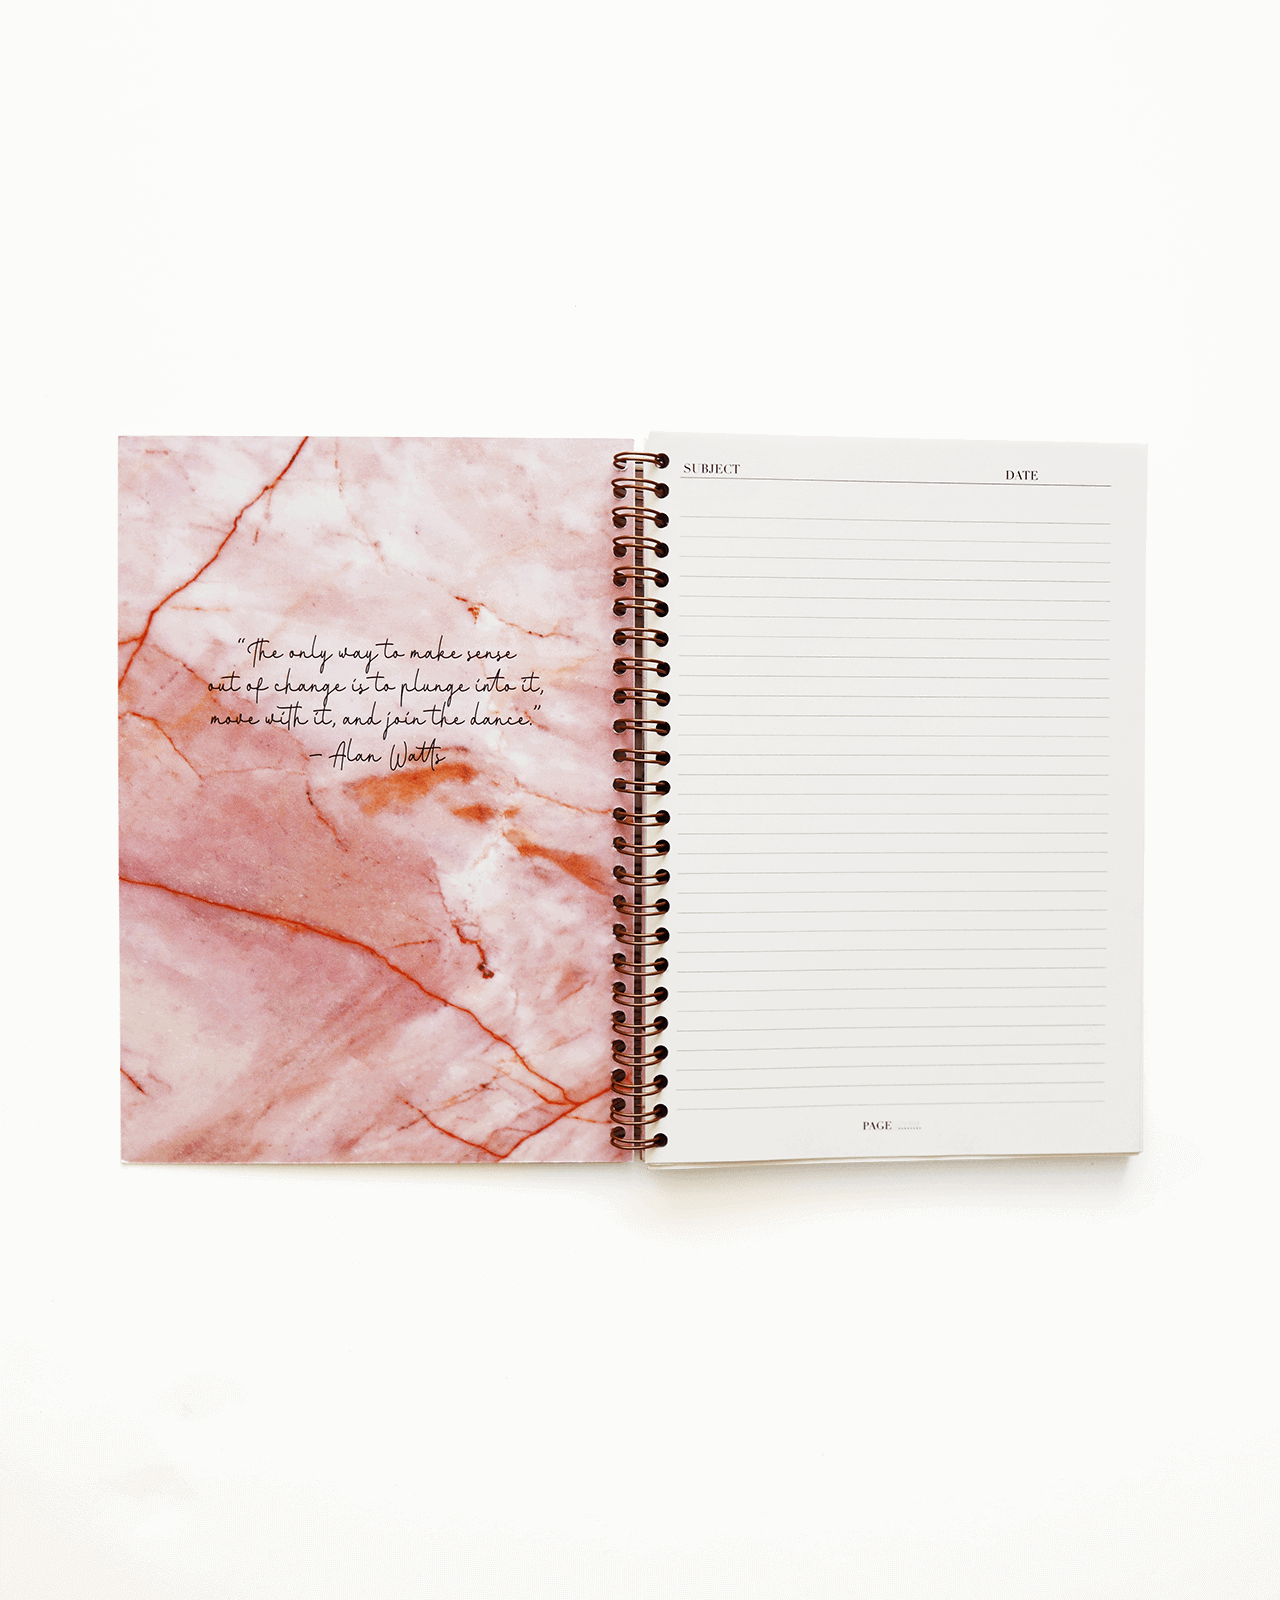 Supplied by Lily A5 Spiral Notebook in Luxurious Rose Quartz